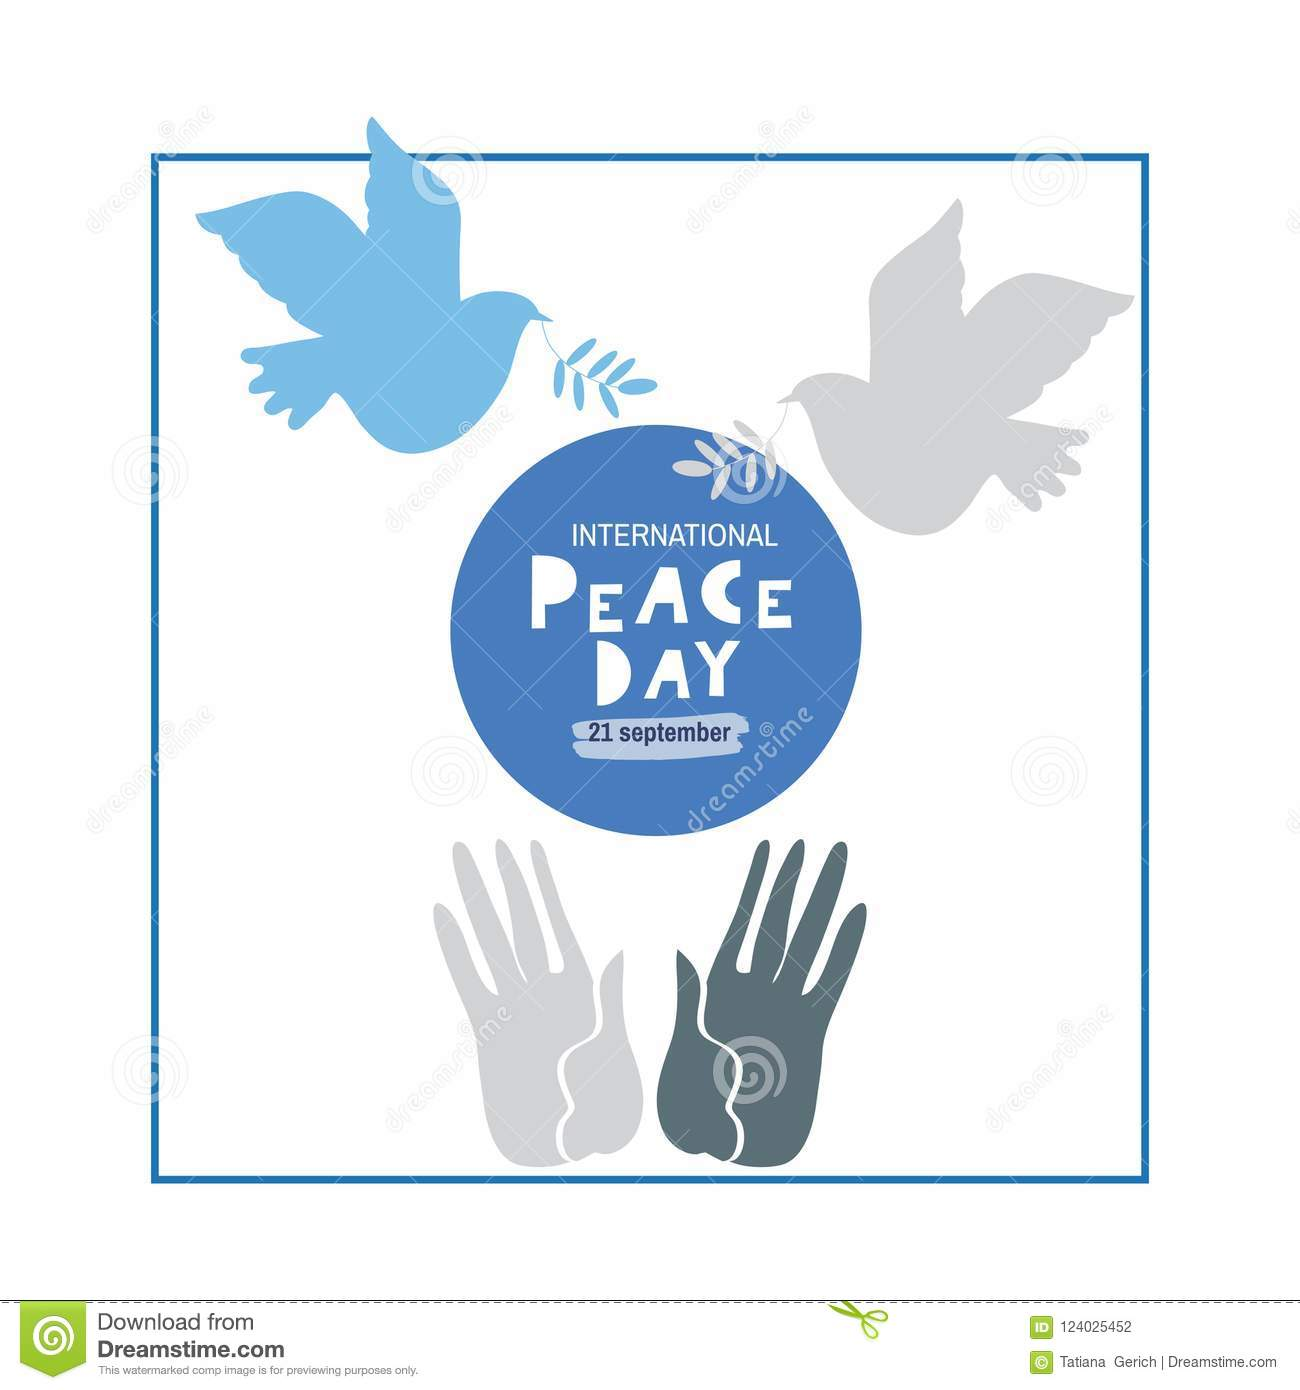 Peace day template poster stock vector. Illustration of illustration ...